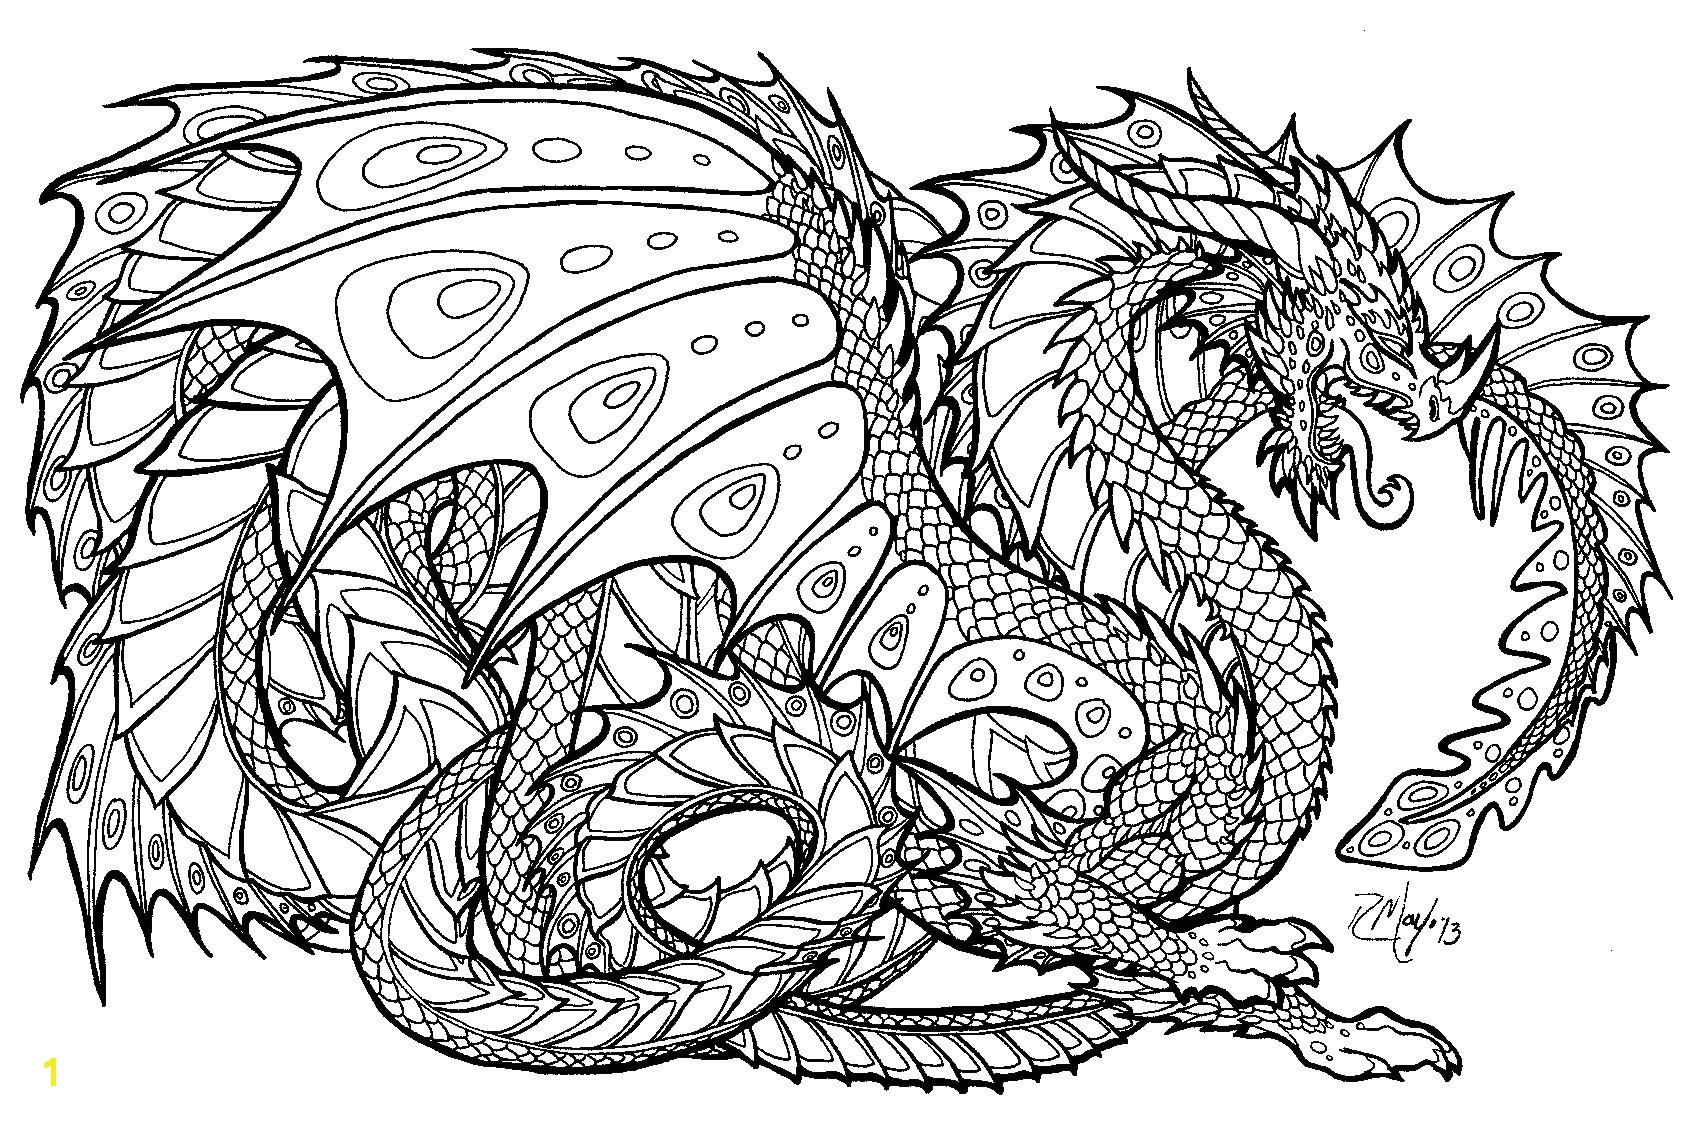 Coloring Pages Of Real Dragons Realistic Dragon Coloring Pages for Adults